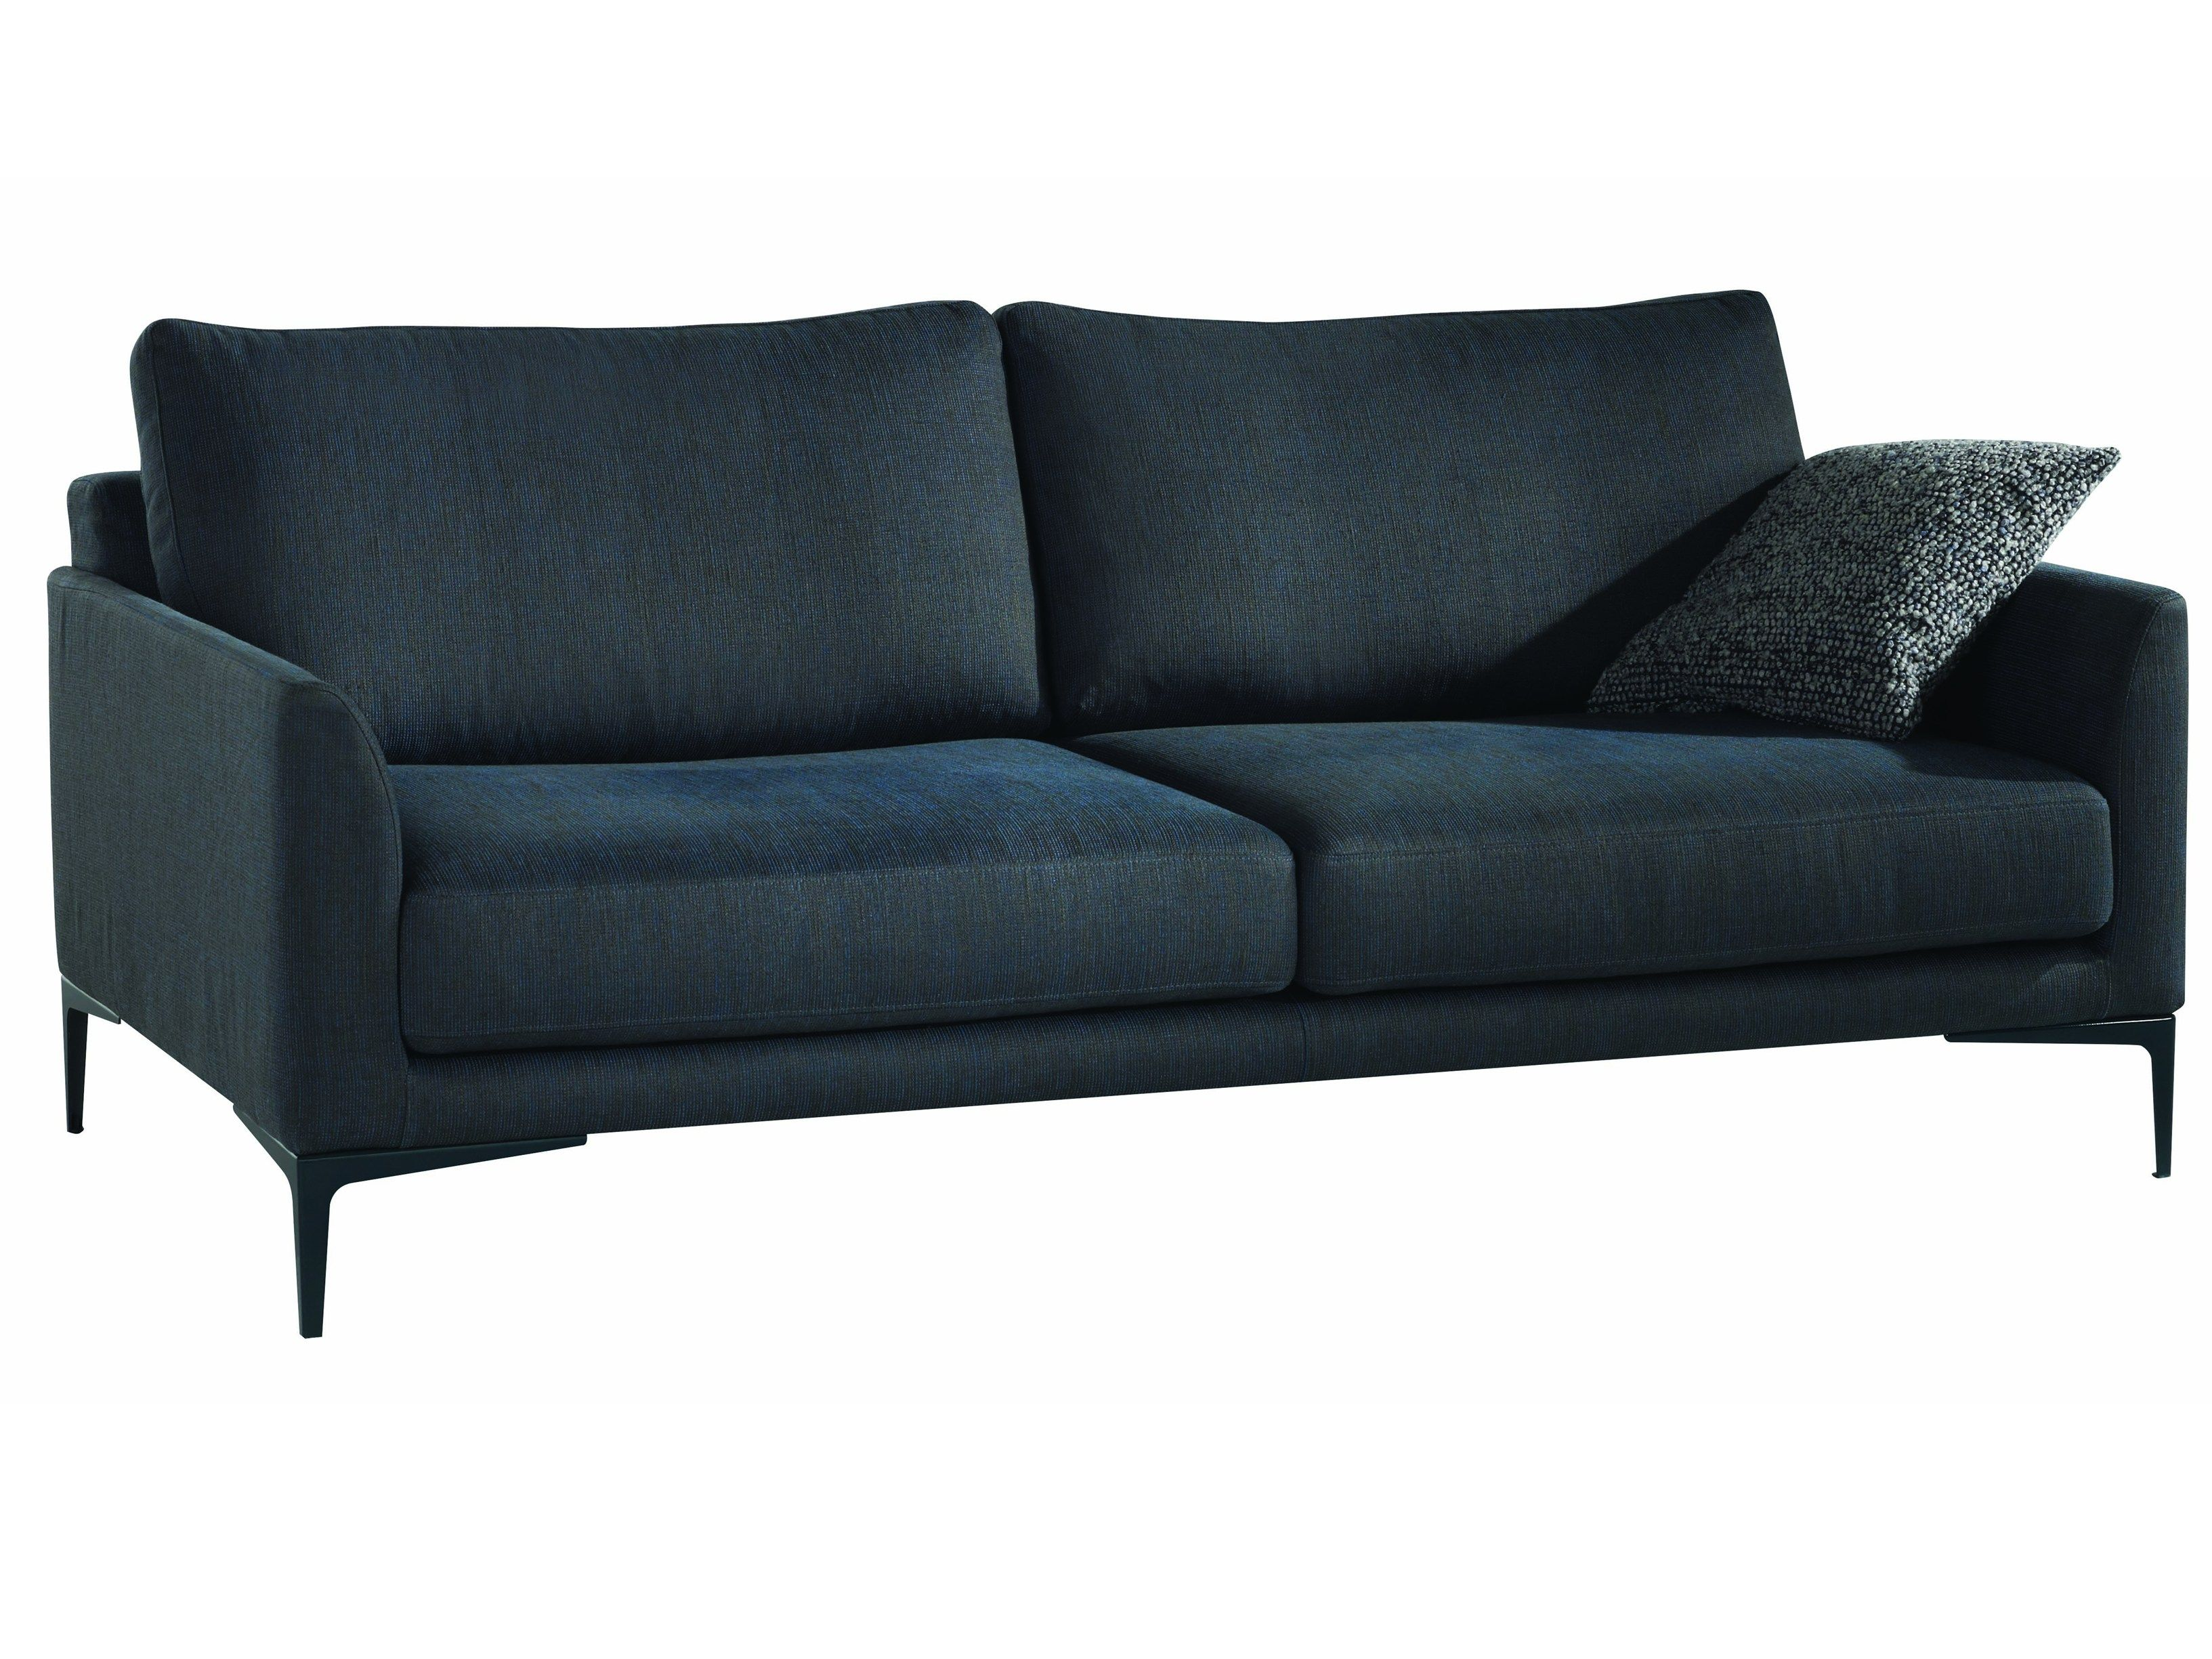 Corner Fabric Sofa With Removable Cover Exclamation By Roche Bobois